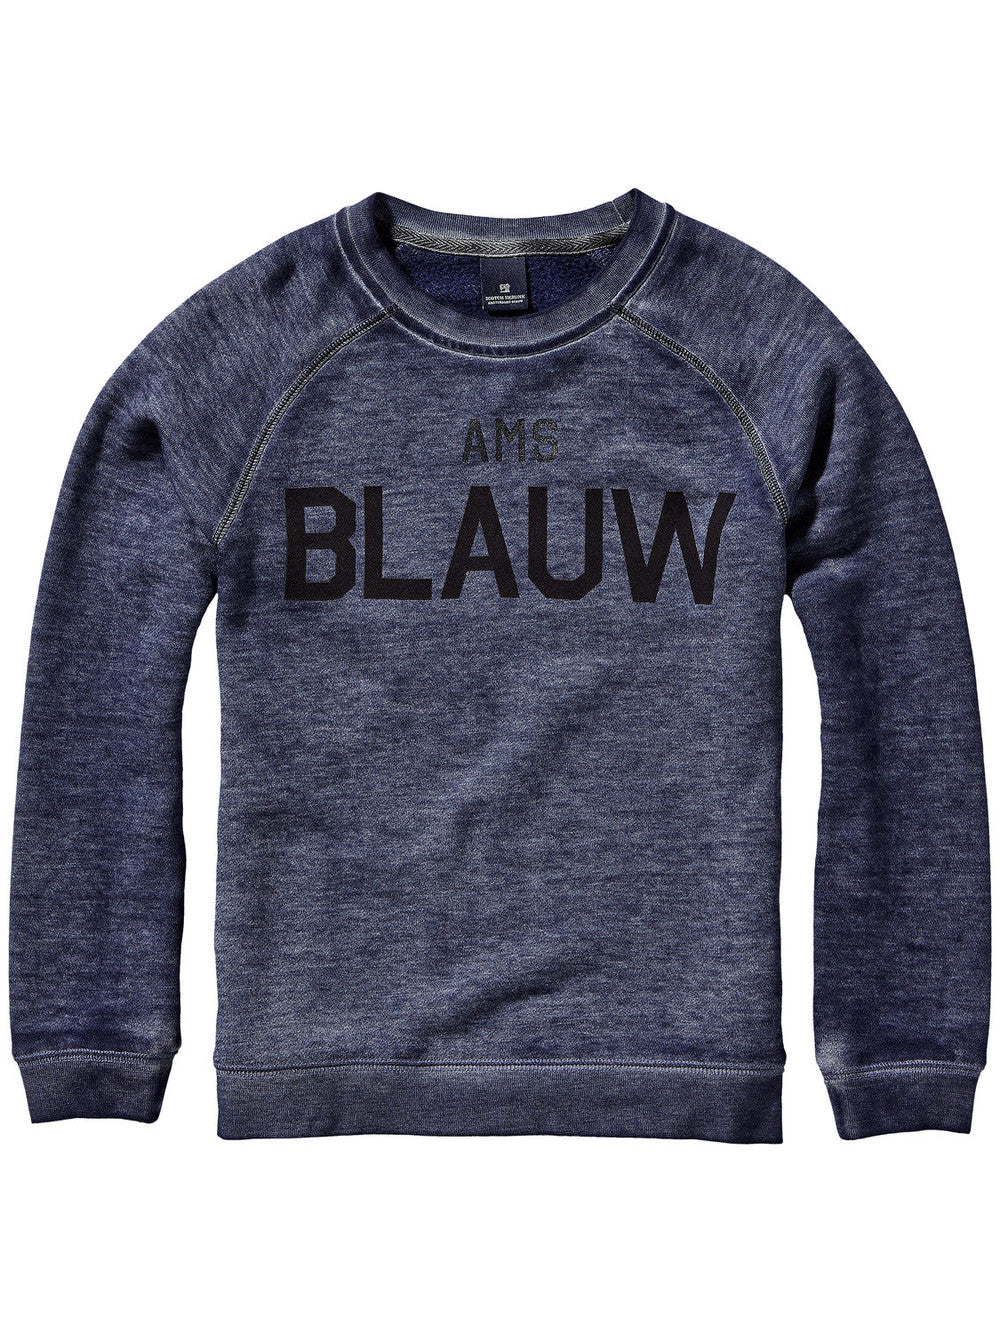 Scotch & Soda Boy 'BLAUW' Sweater Boys Sweaters & Sweatshirts Scotch Shrunk [Petit_New_York]